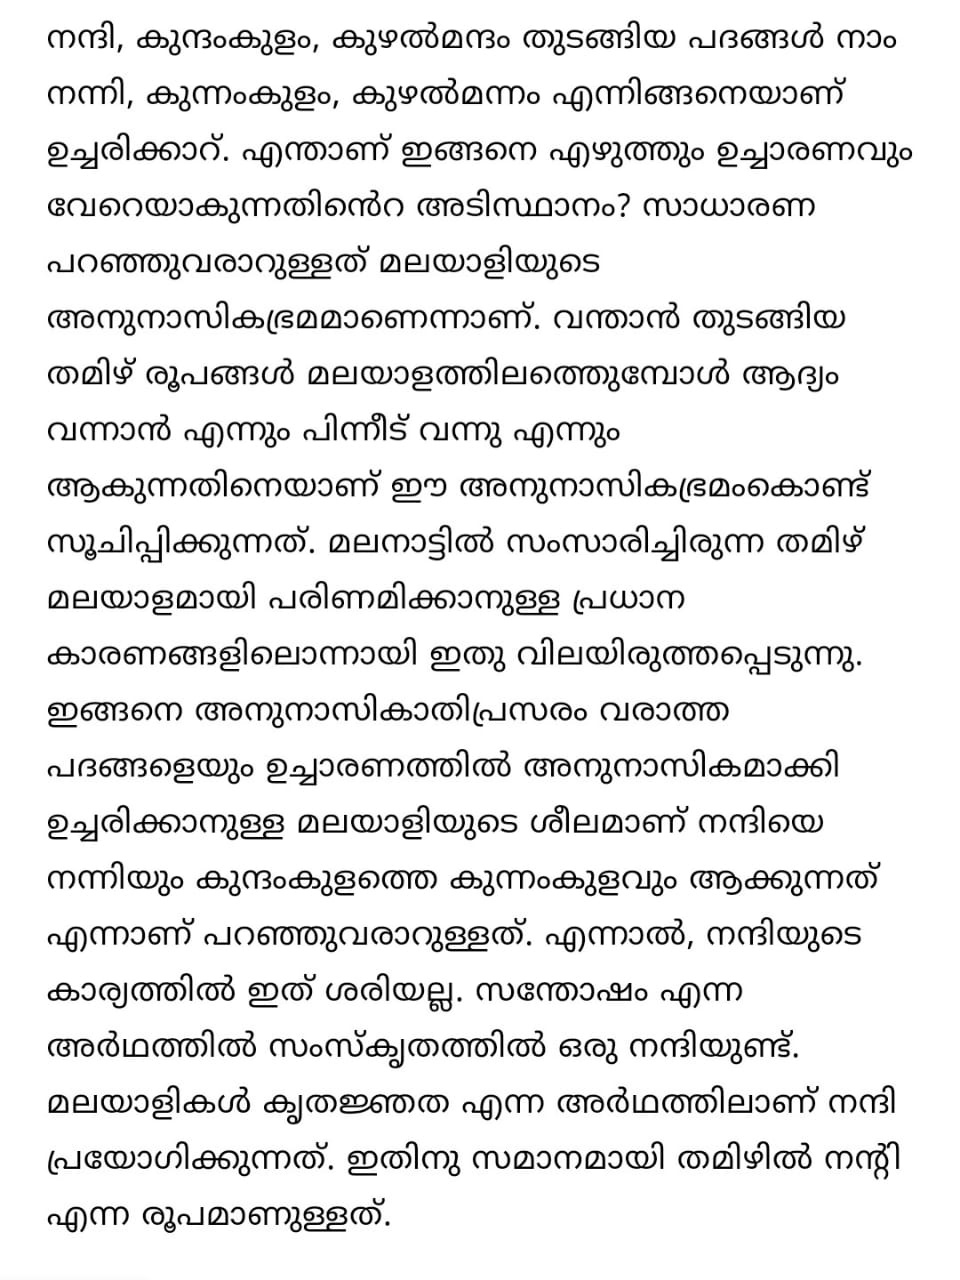 How To Say Thank You In Malayalam Quora